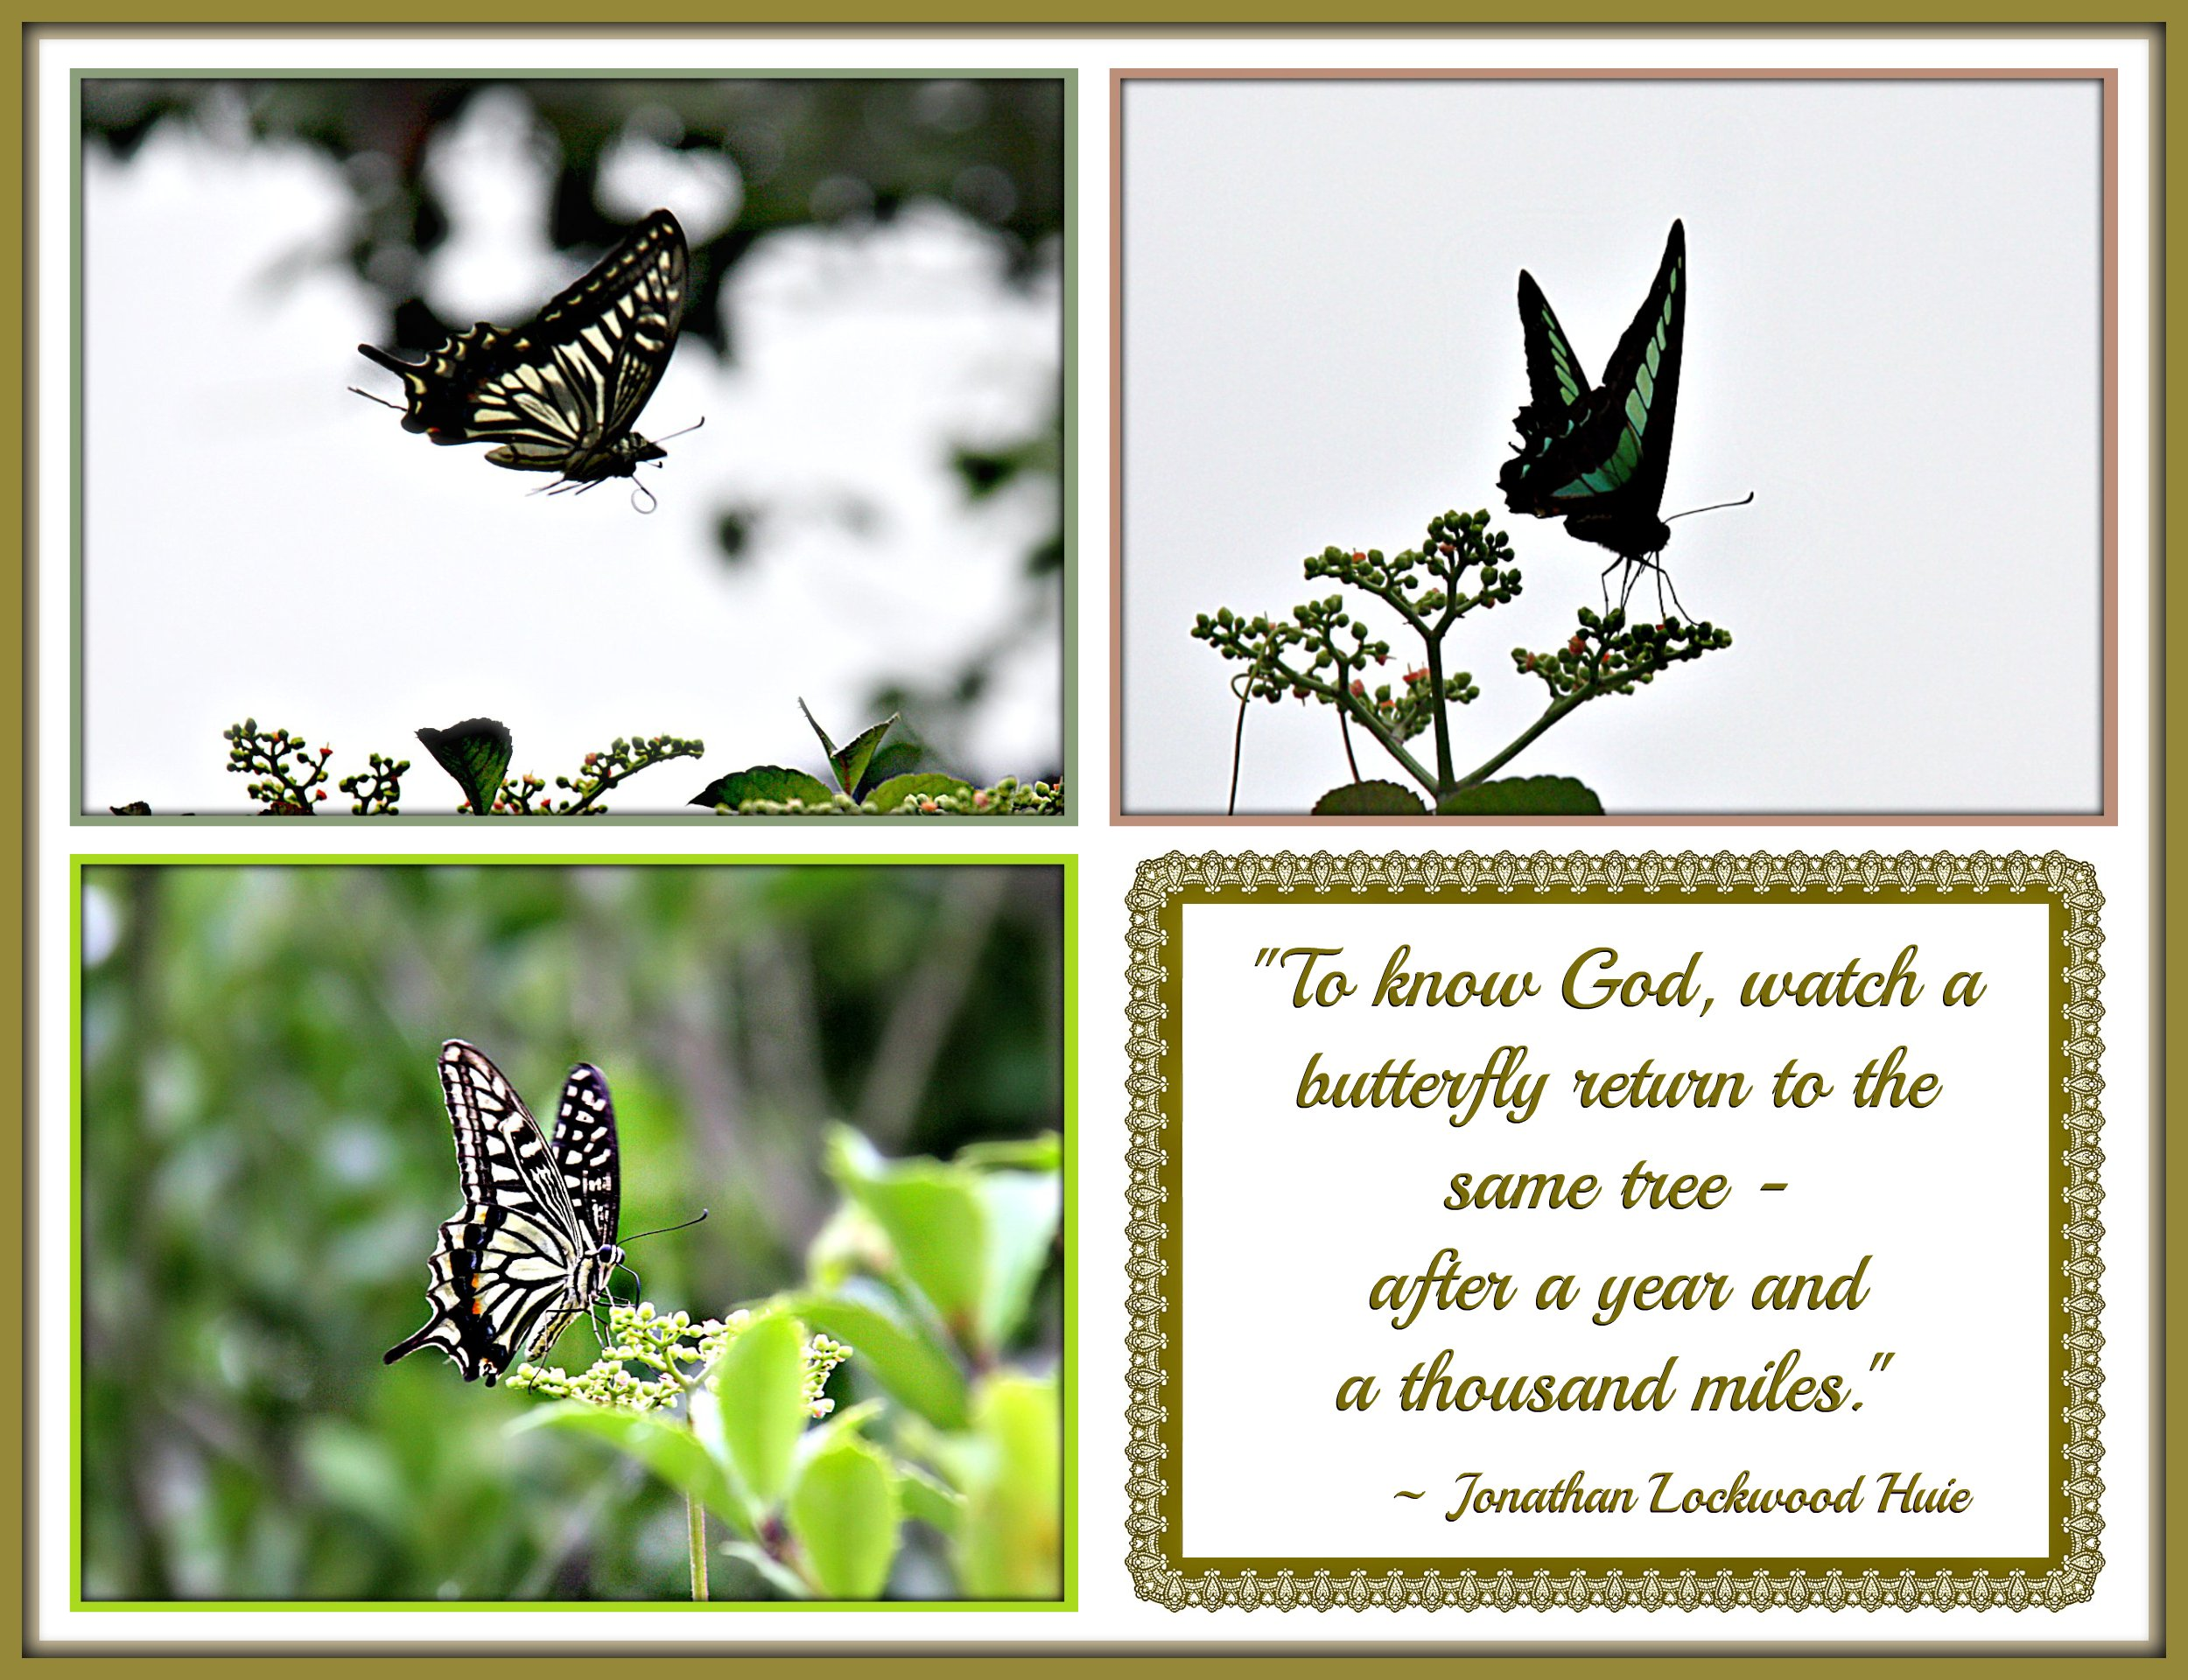 """To know God, watch a butterfly return to the same tree - after a year and a thousand miles."""